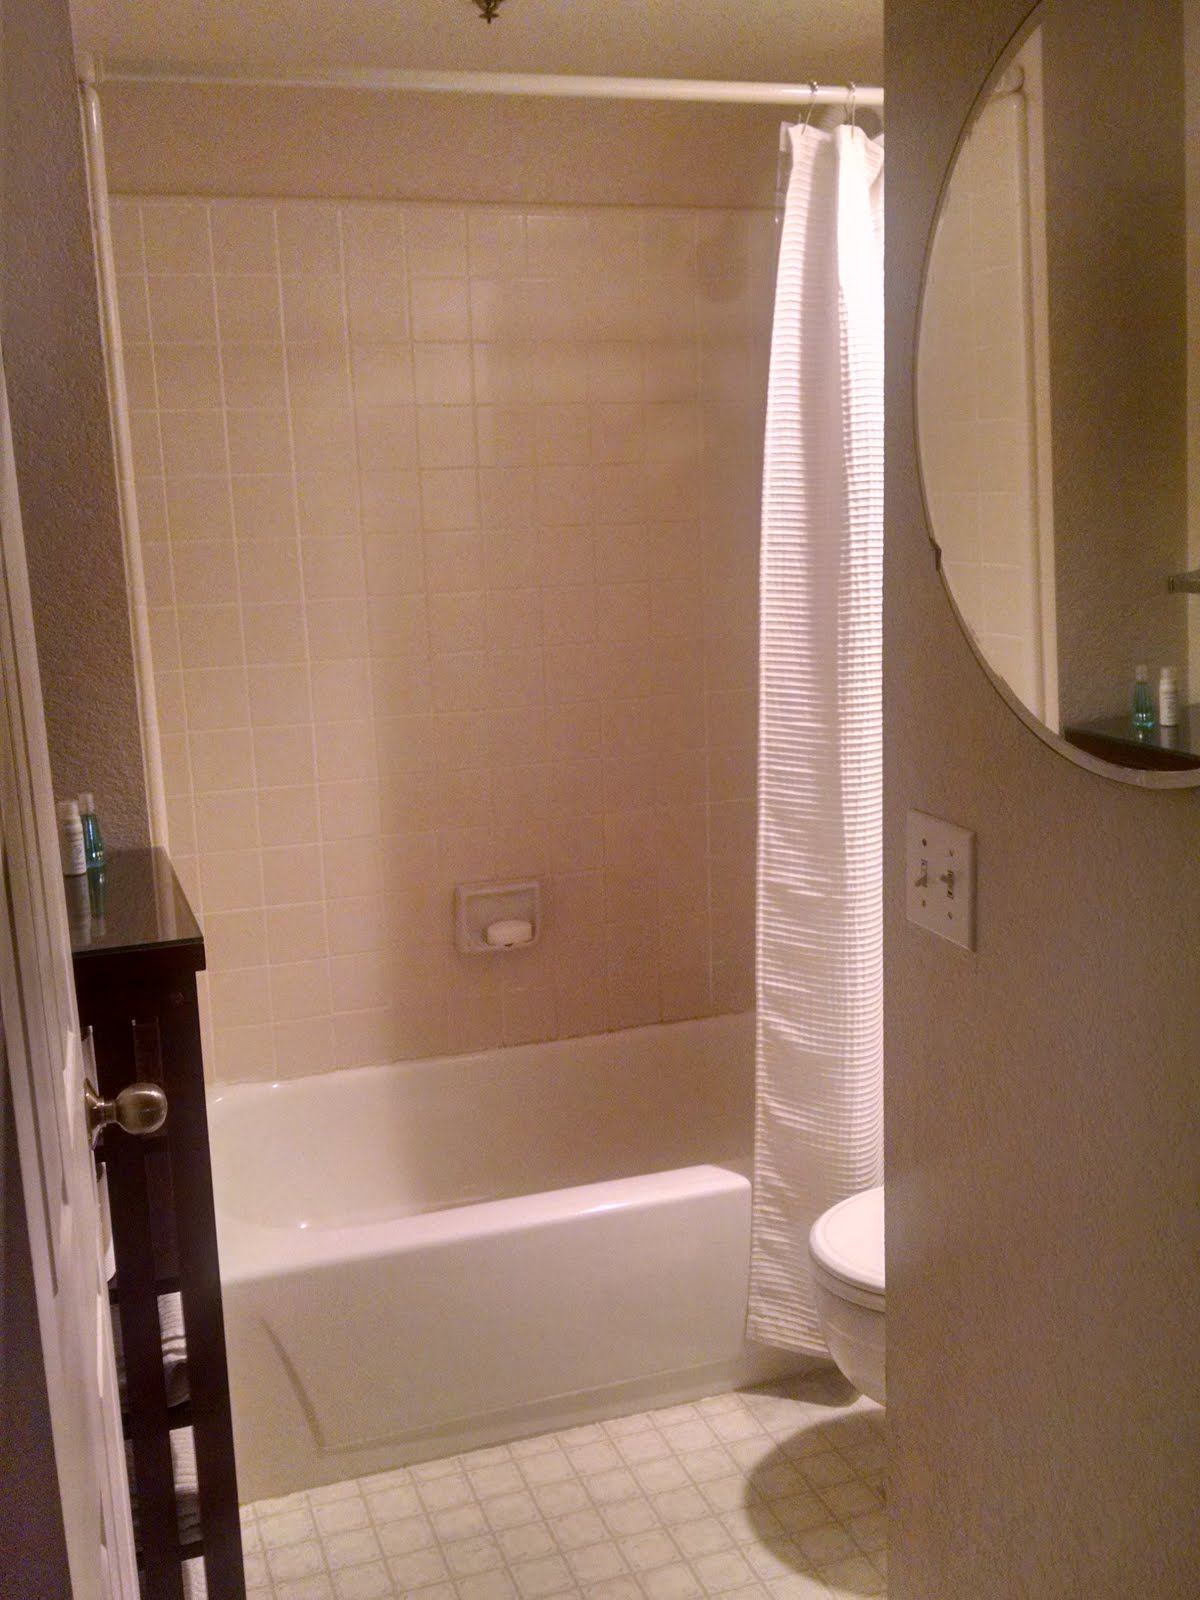 bathtub/shower